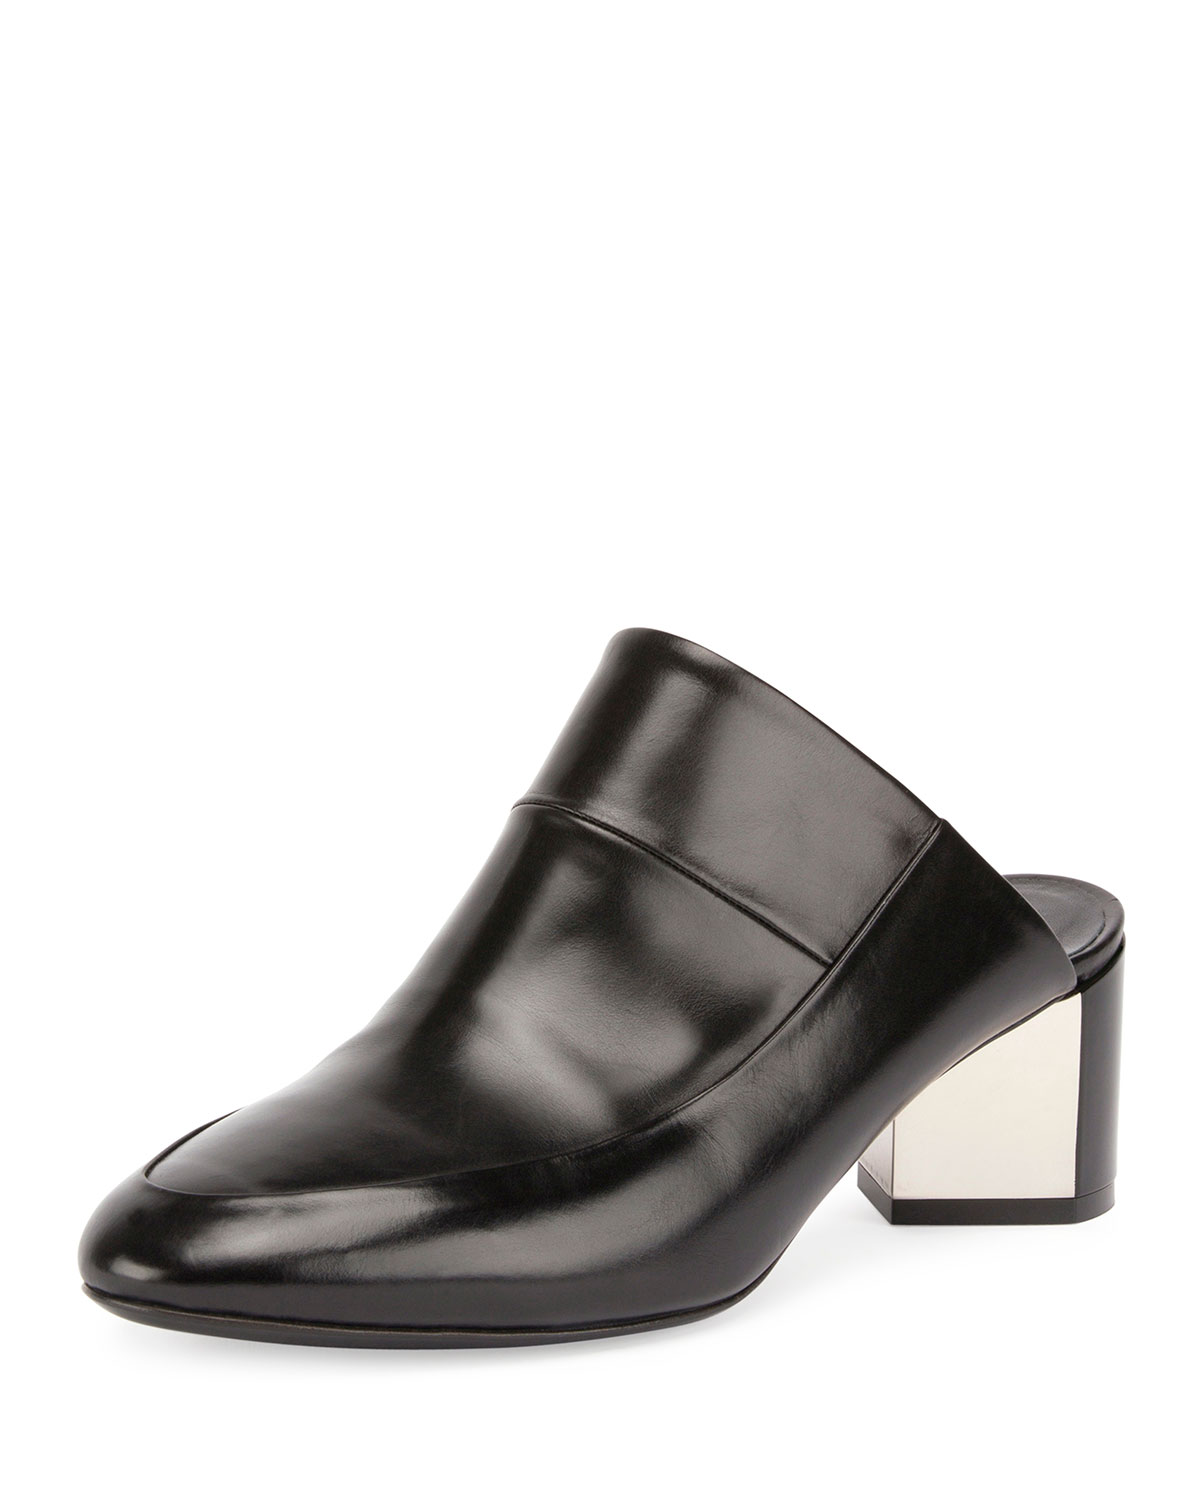 Leather Block-Heel Mule Pump, Black